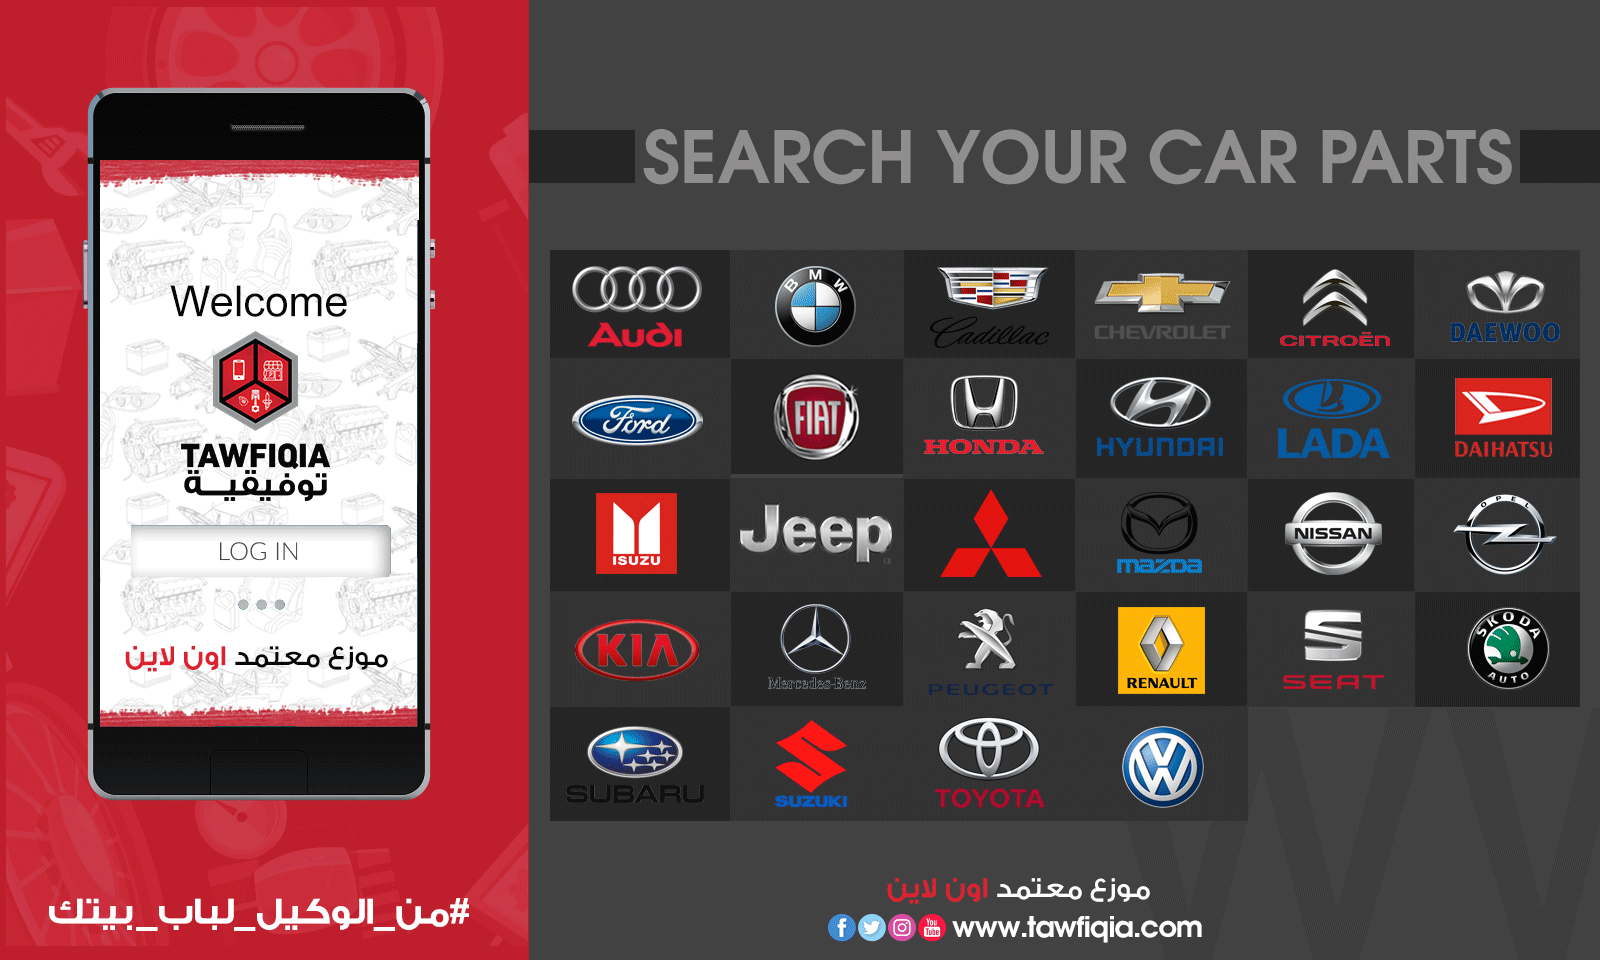 Tawfiqia Mobile App Launched to Help You Find Car Related Products